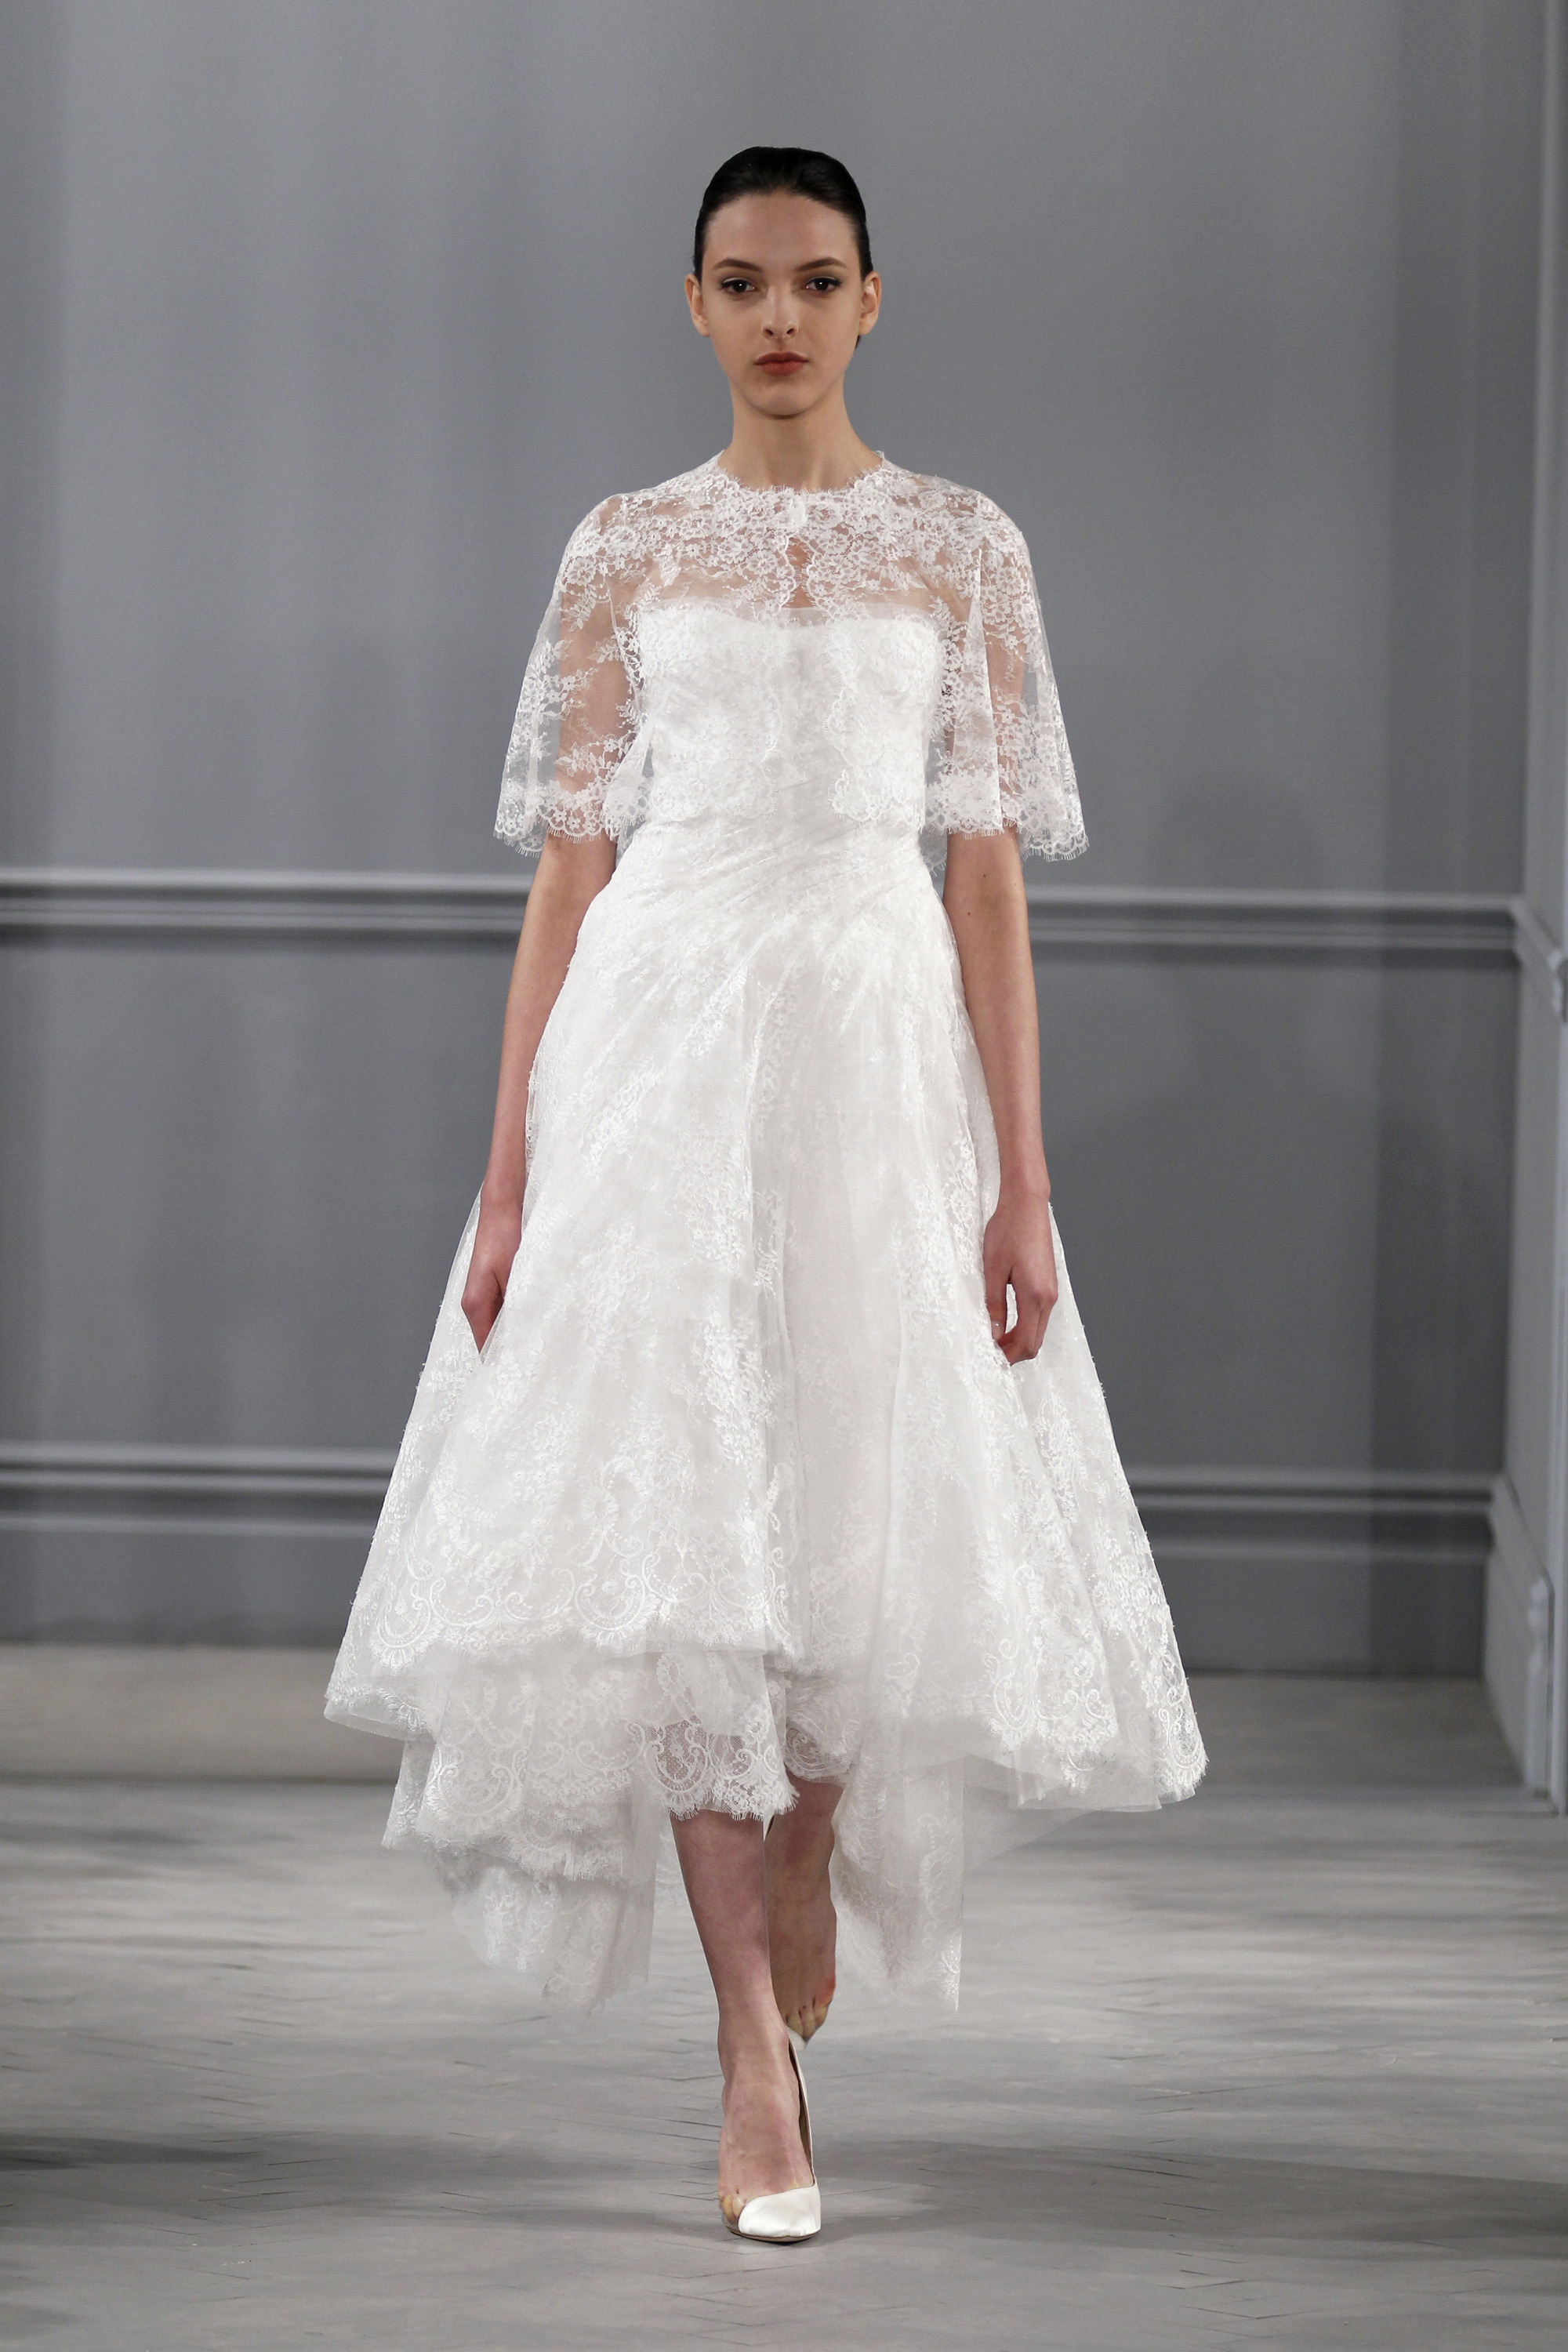 Capes - Monique Lhuillier Spring 2014 Wedding Dress